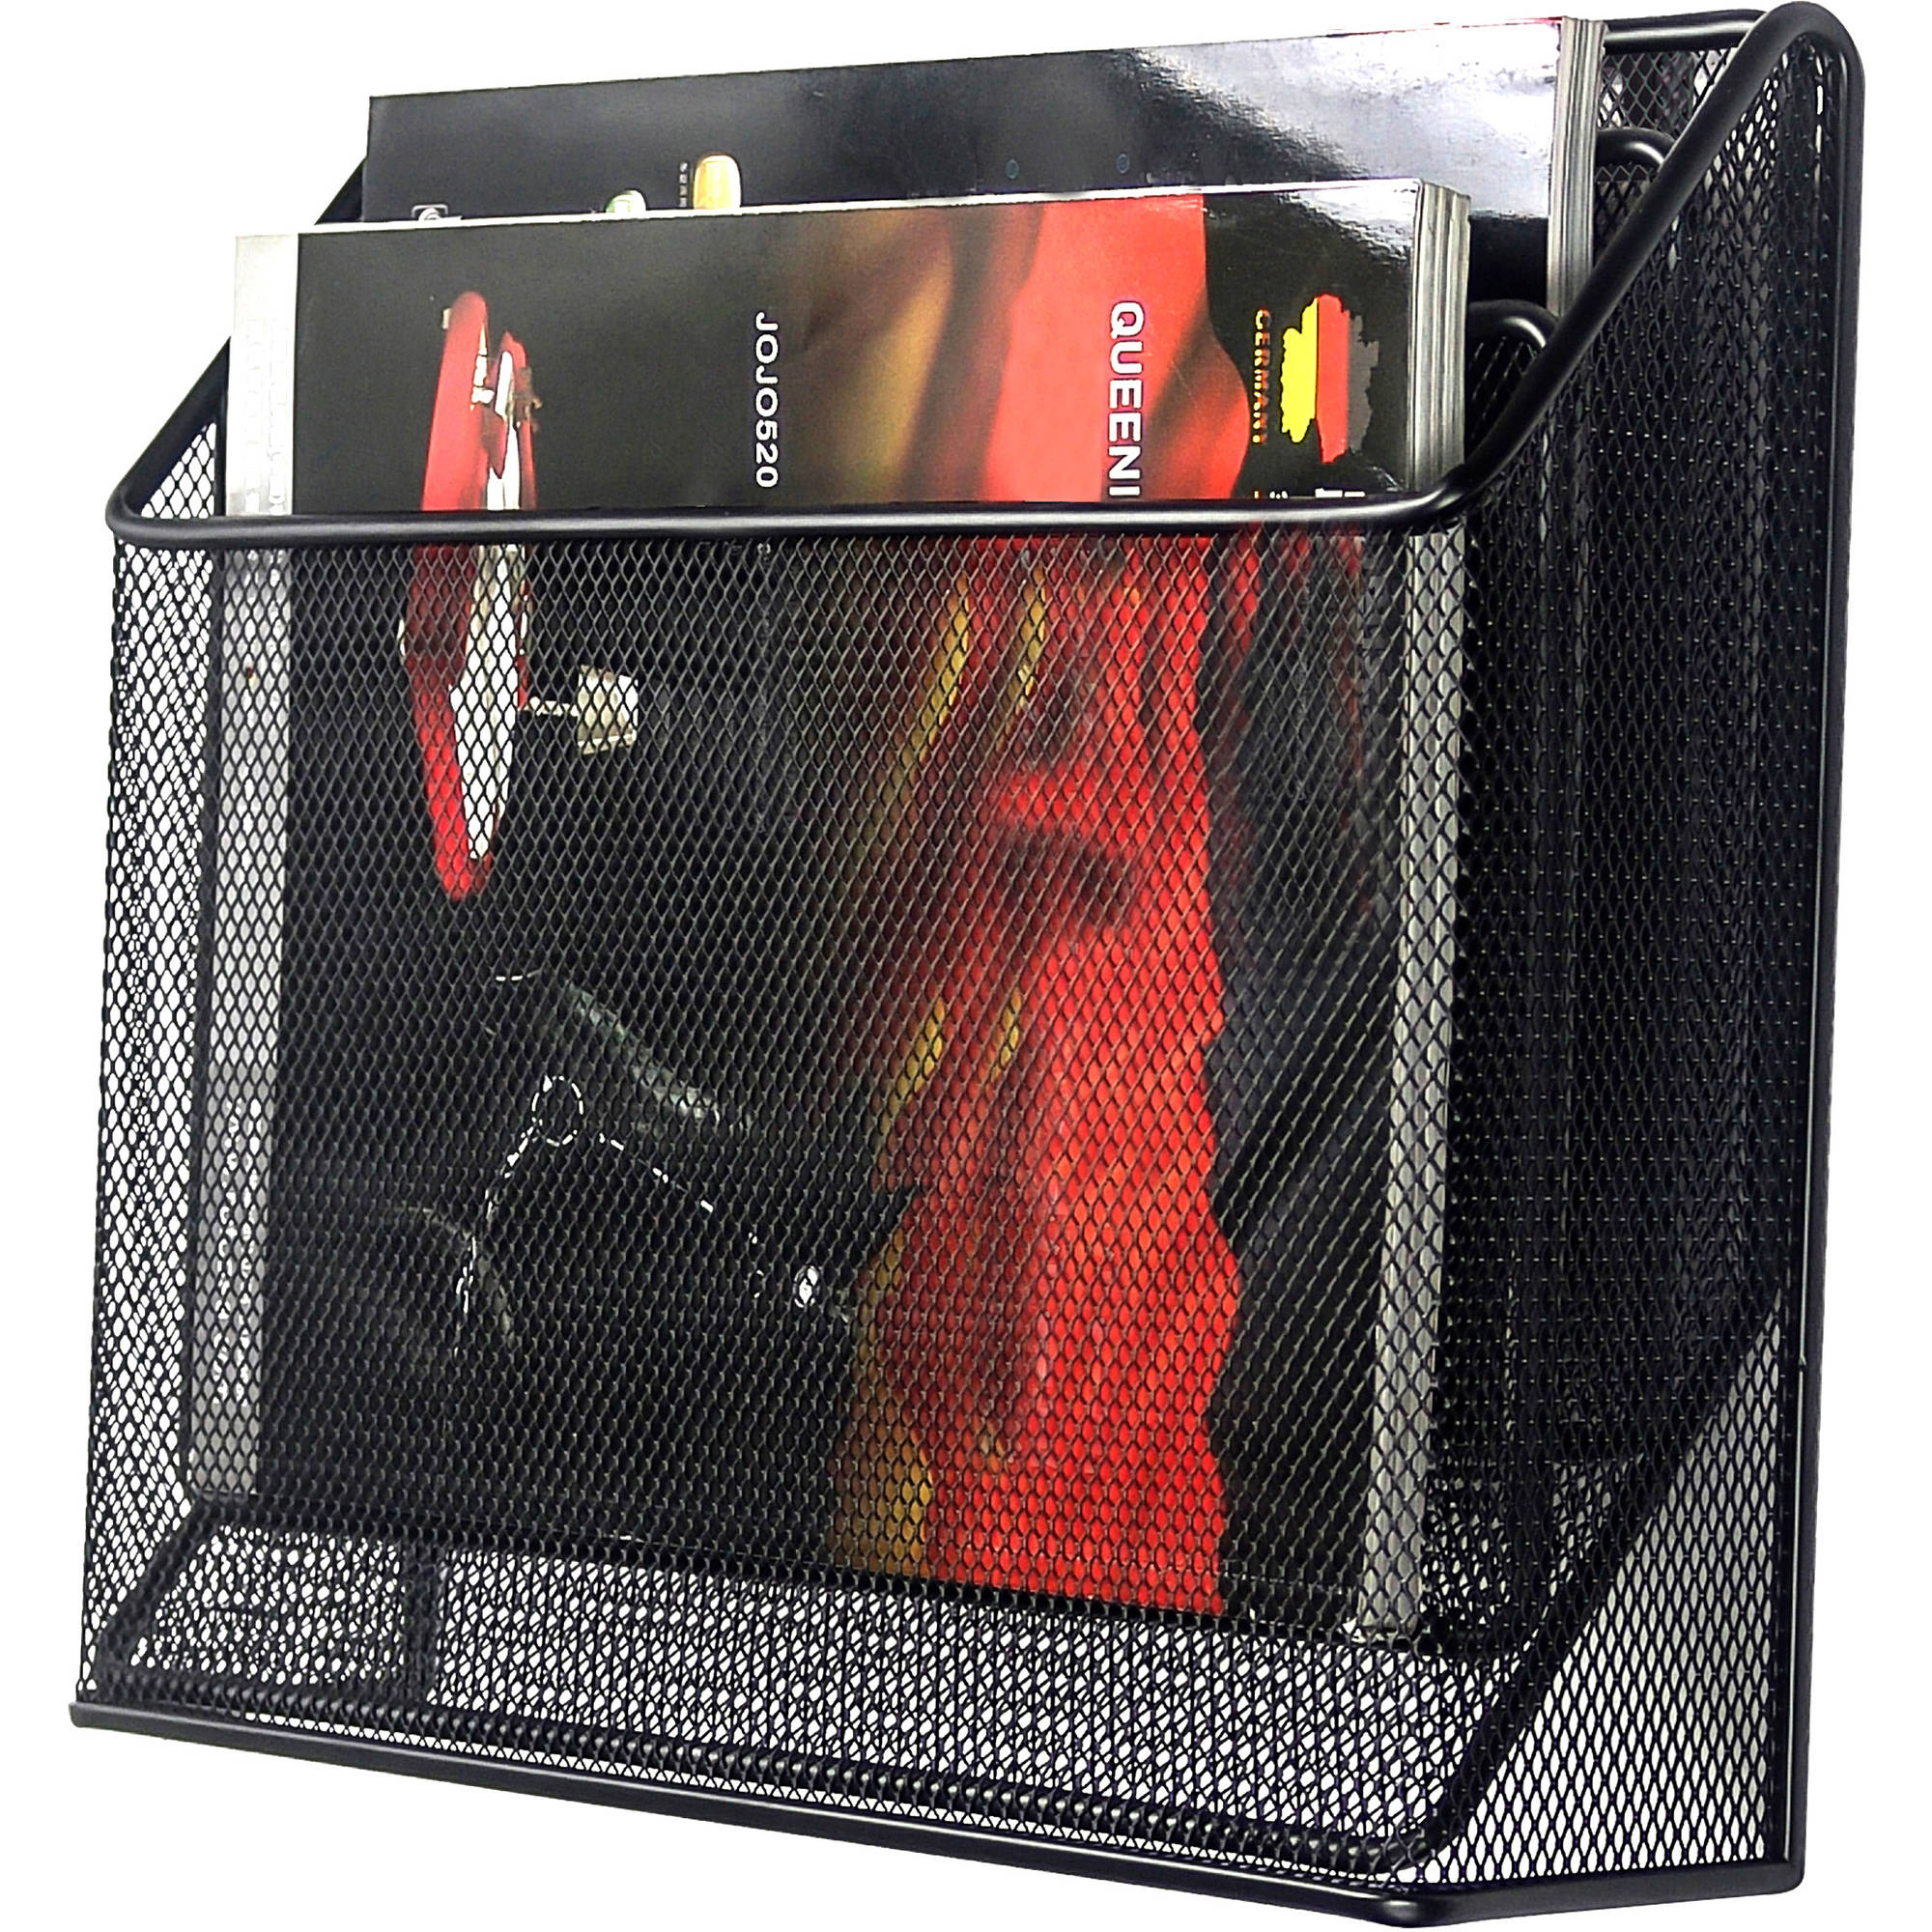 Mesh Desk Organizer with Hook, Black